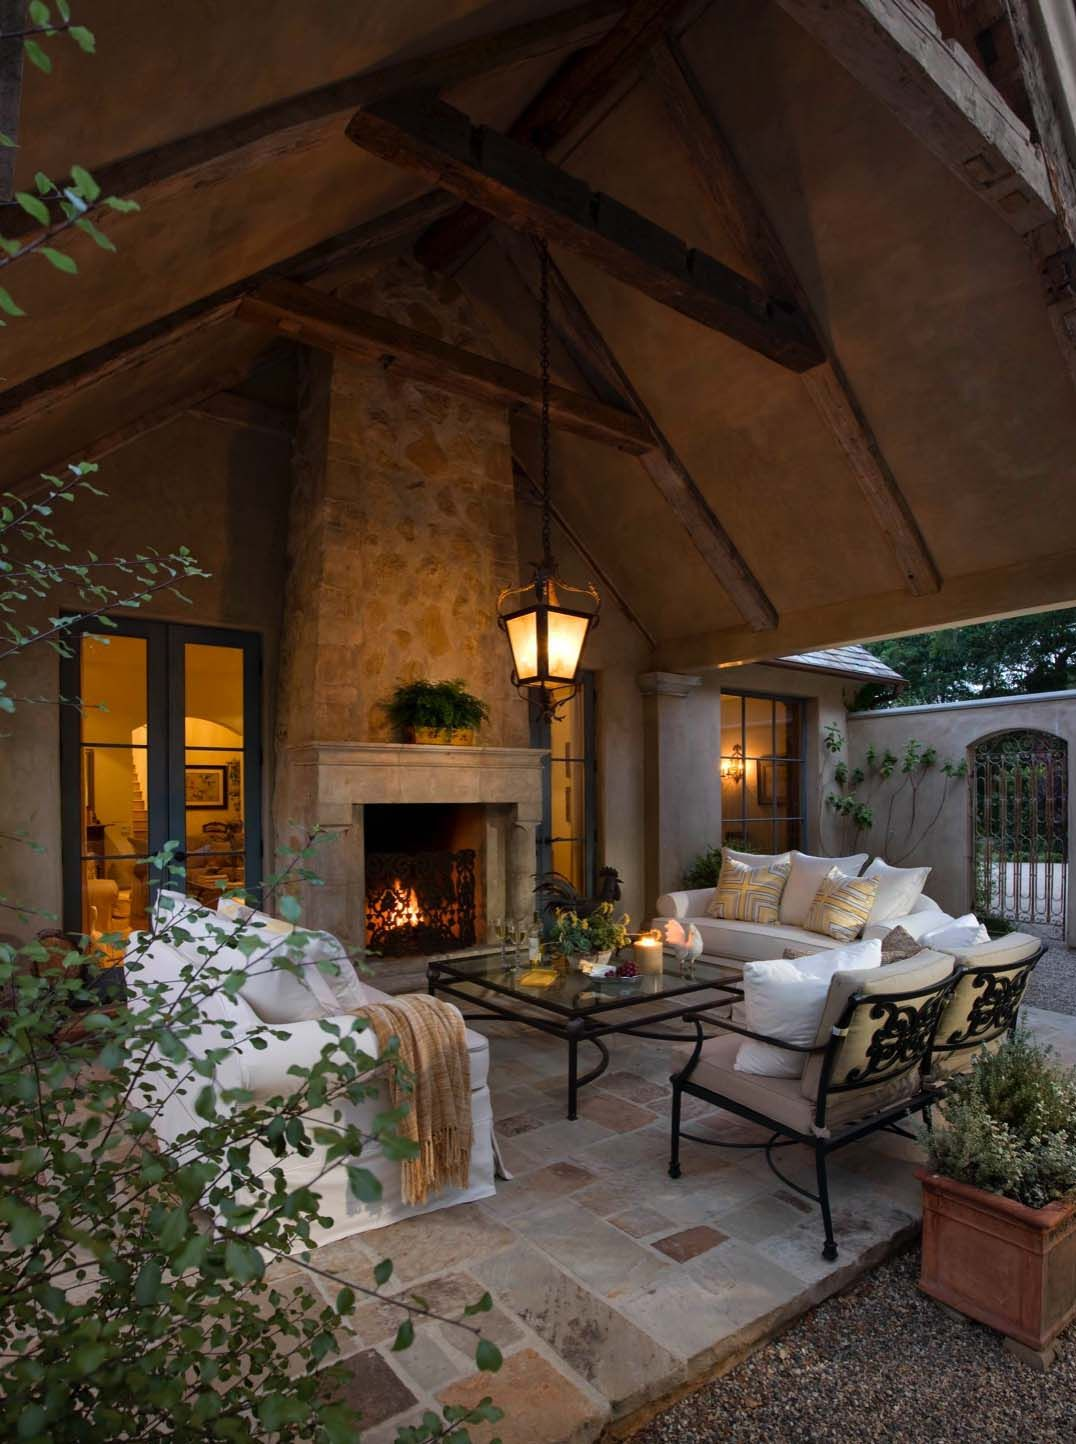 30+ Irresistible outdoor fireplace ideas that will leave